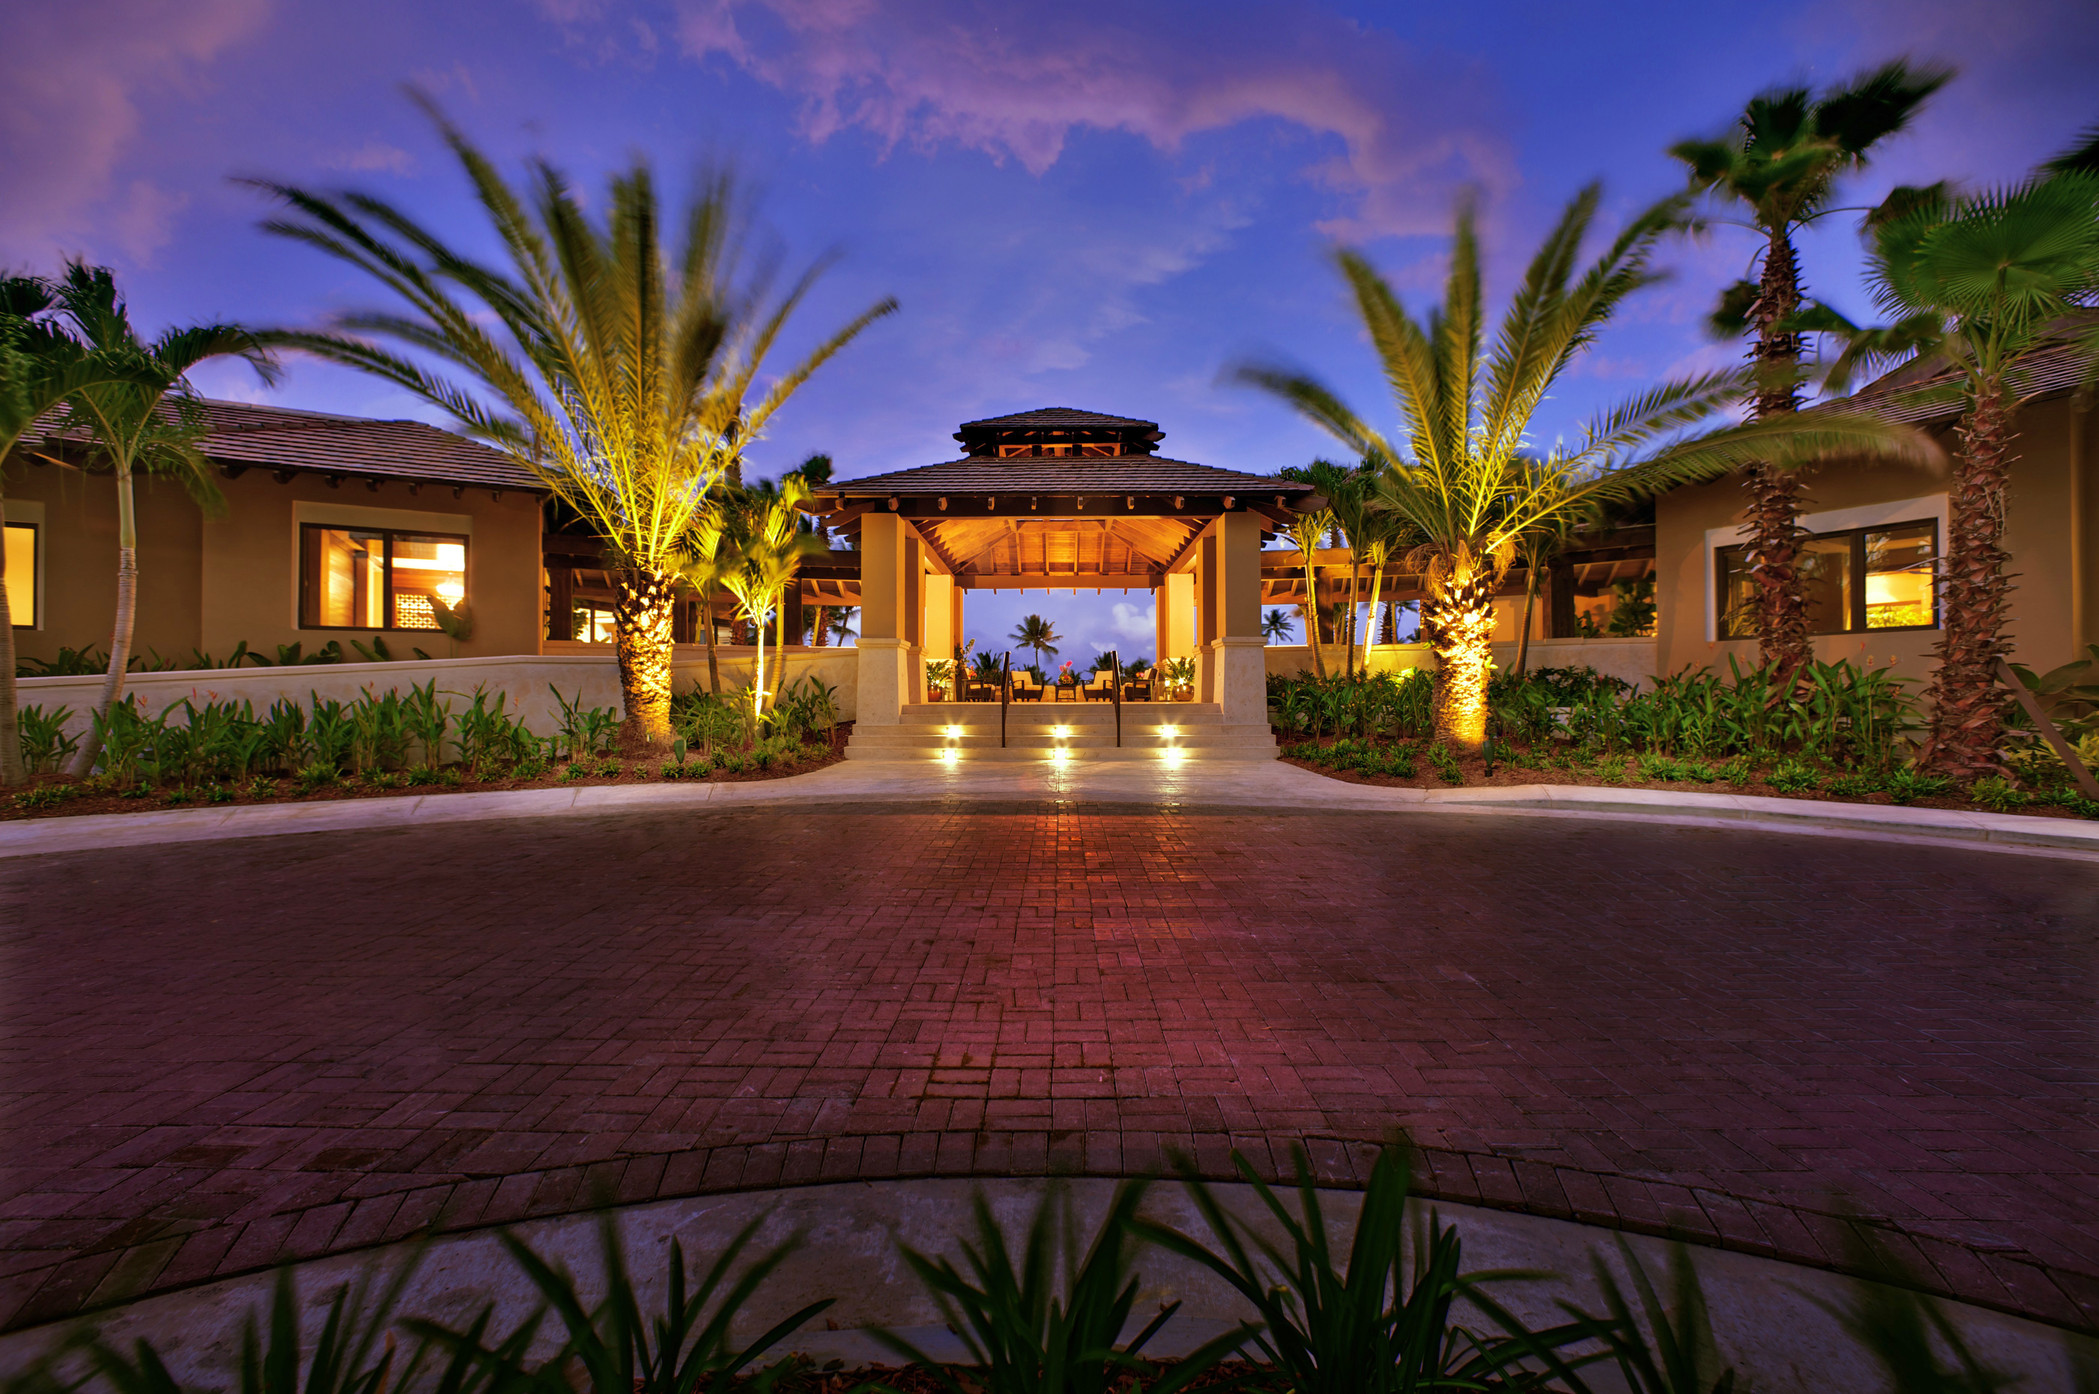 Club House At Sunset_2.jpg